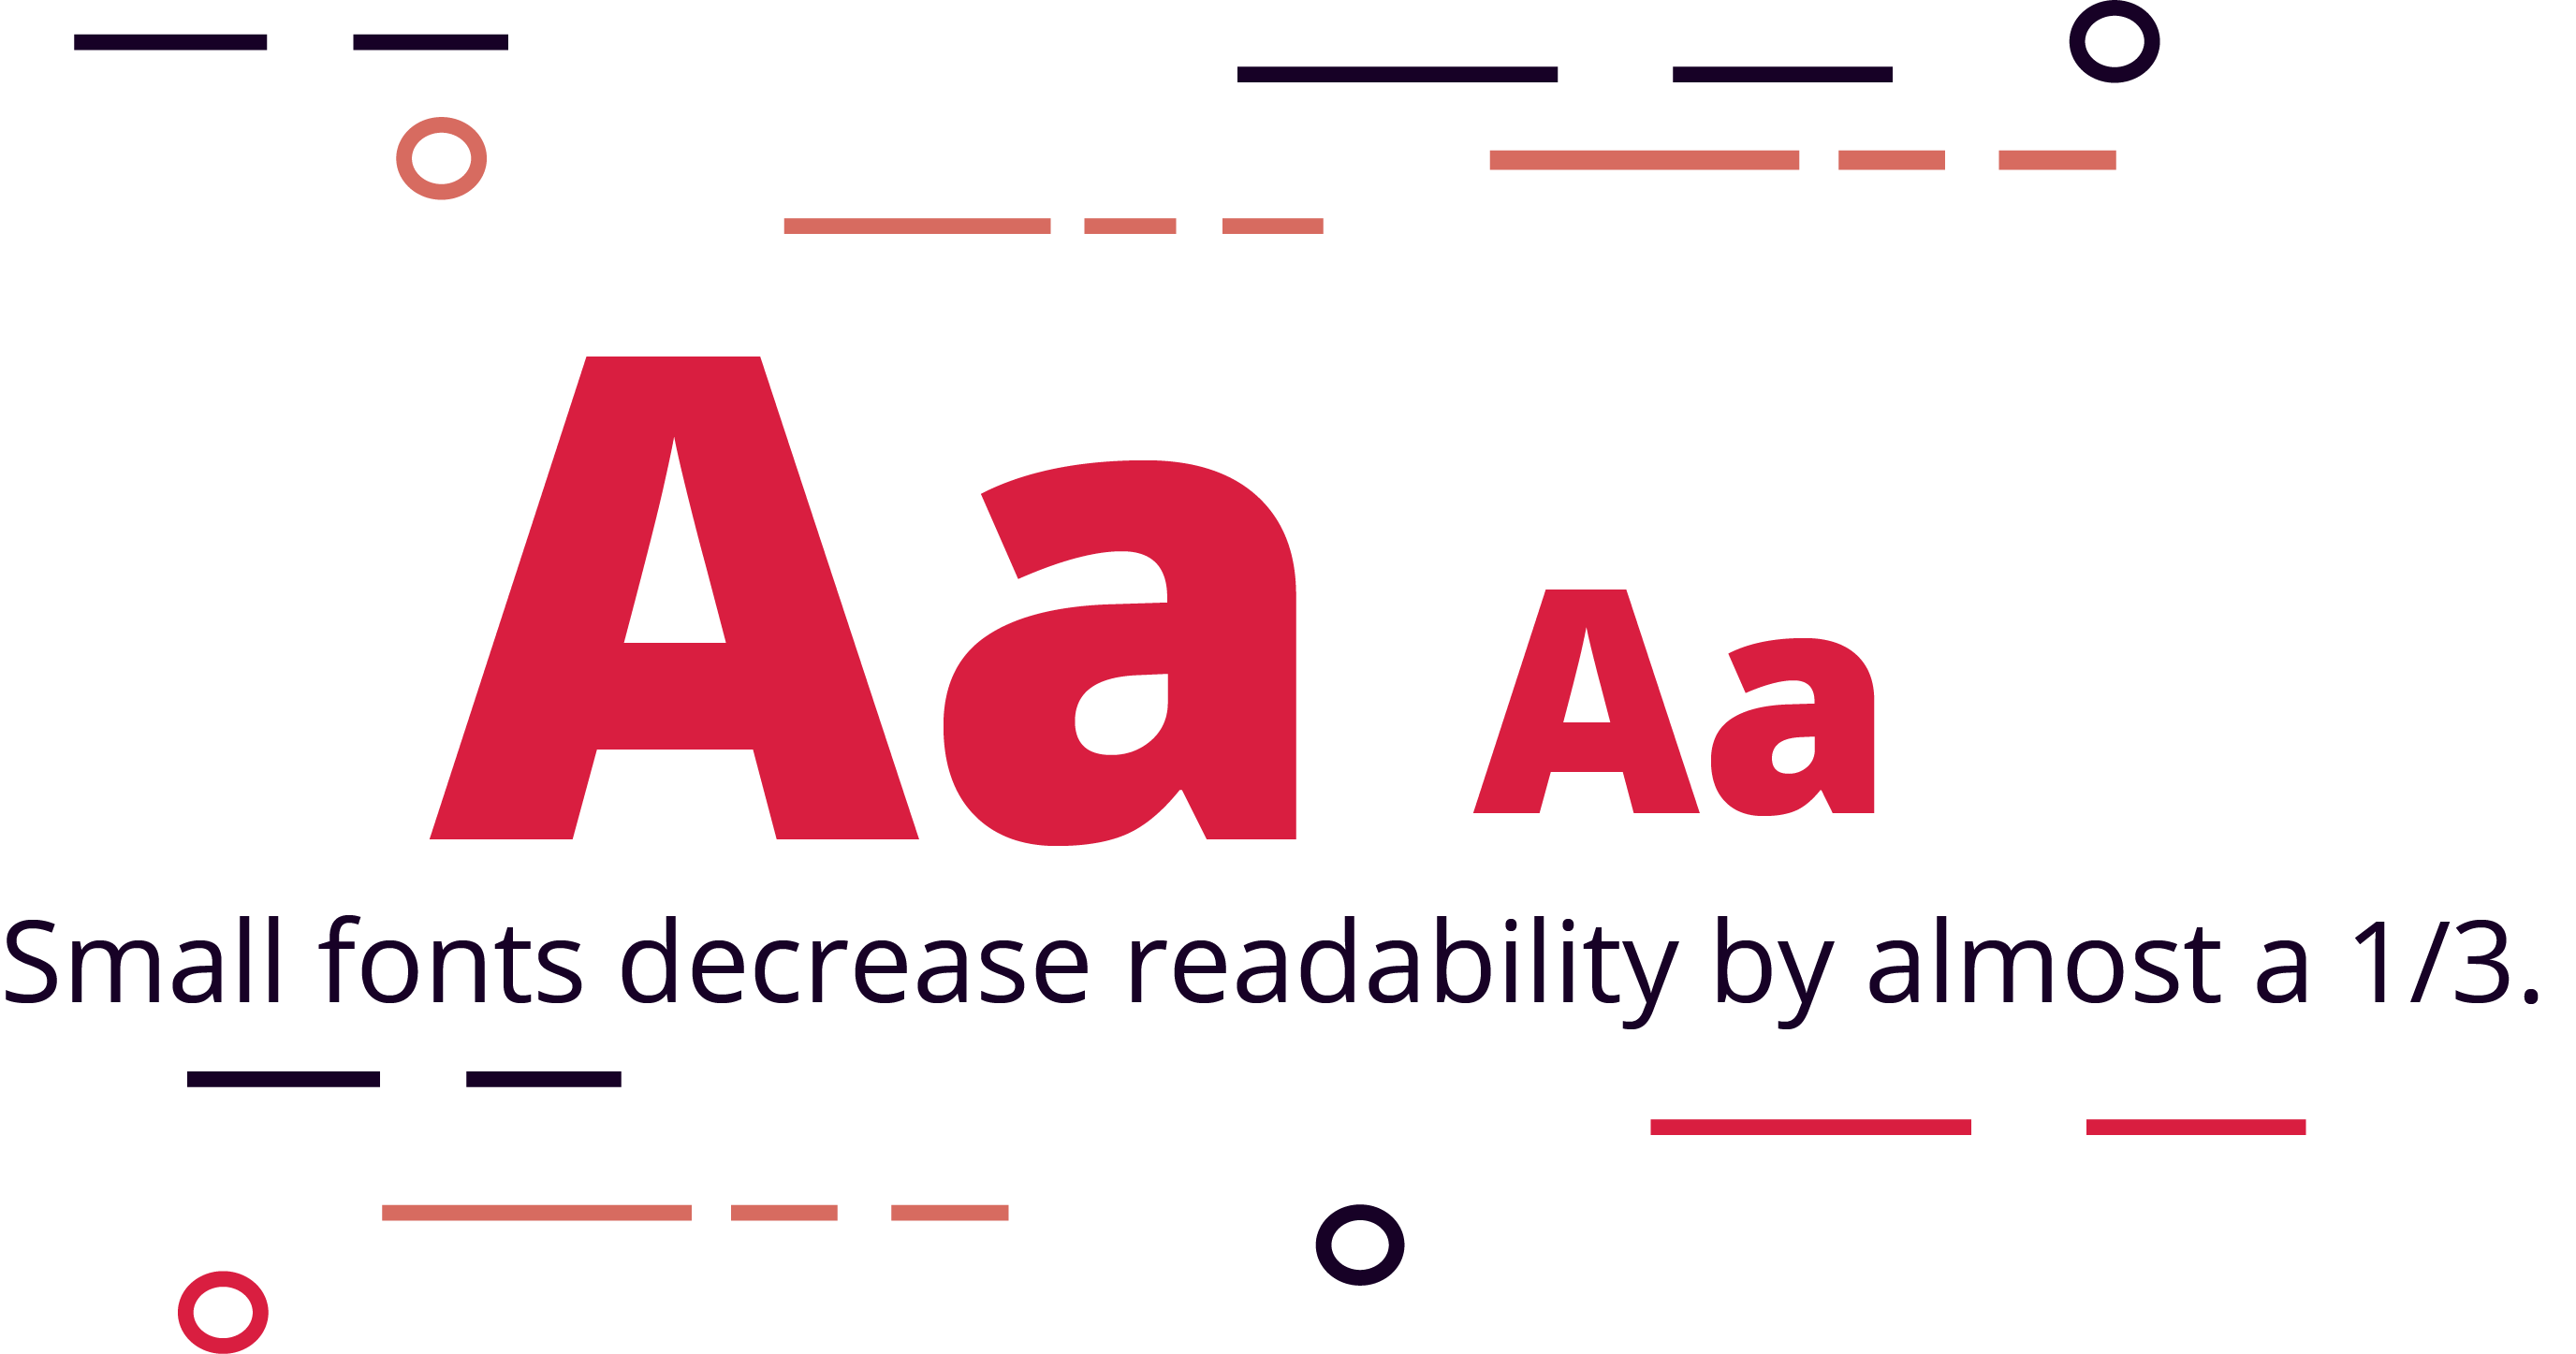 Small Fonts Decrease Readability by Almost a Third